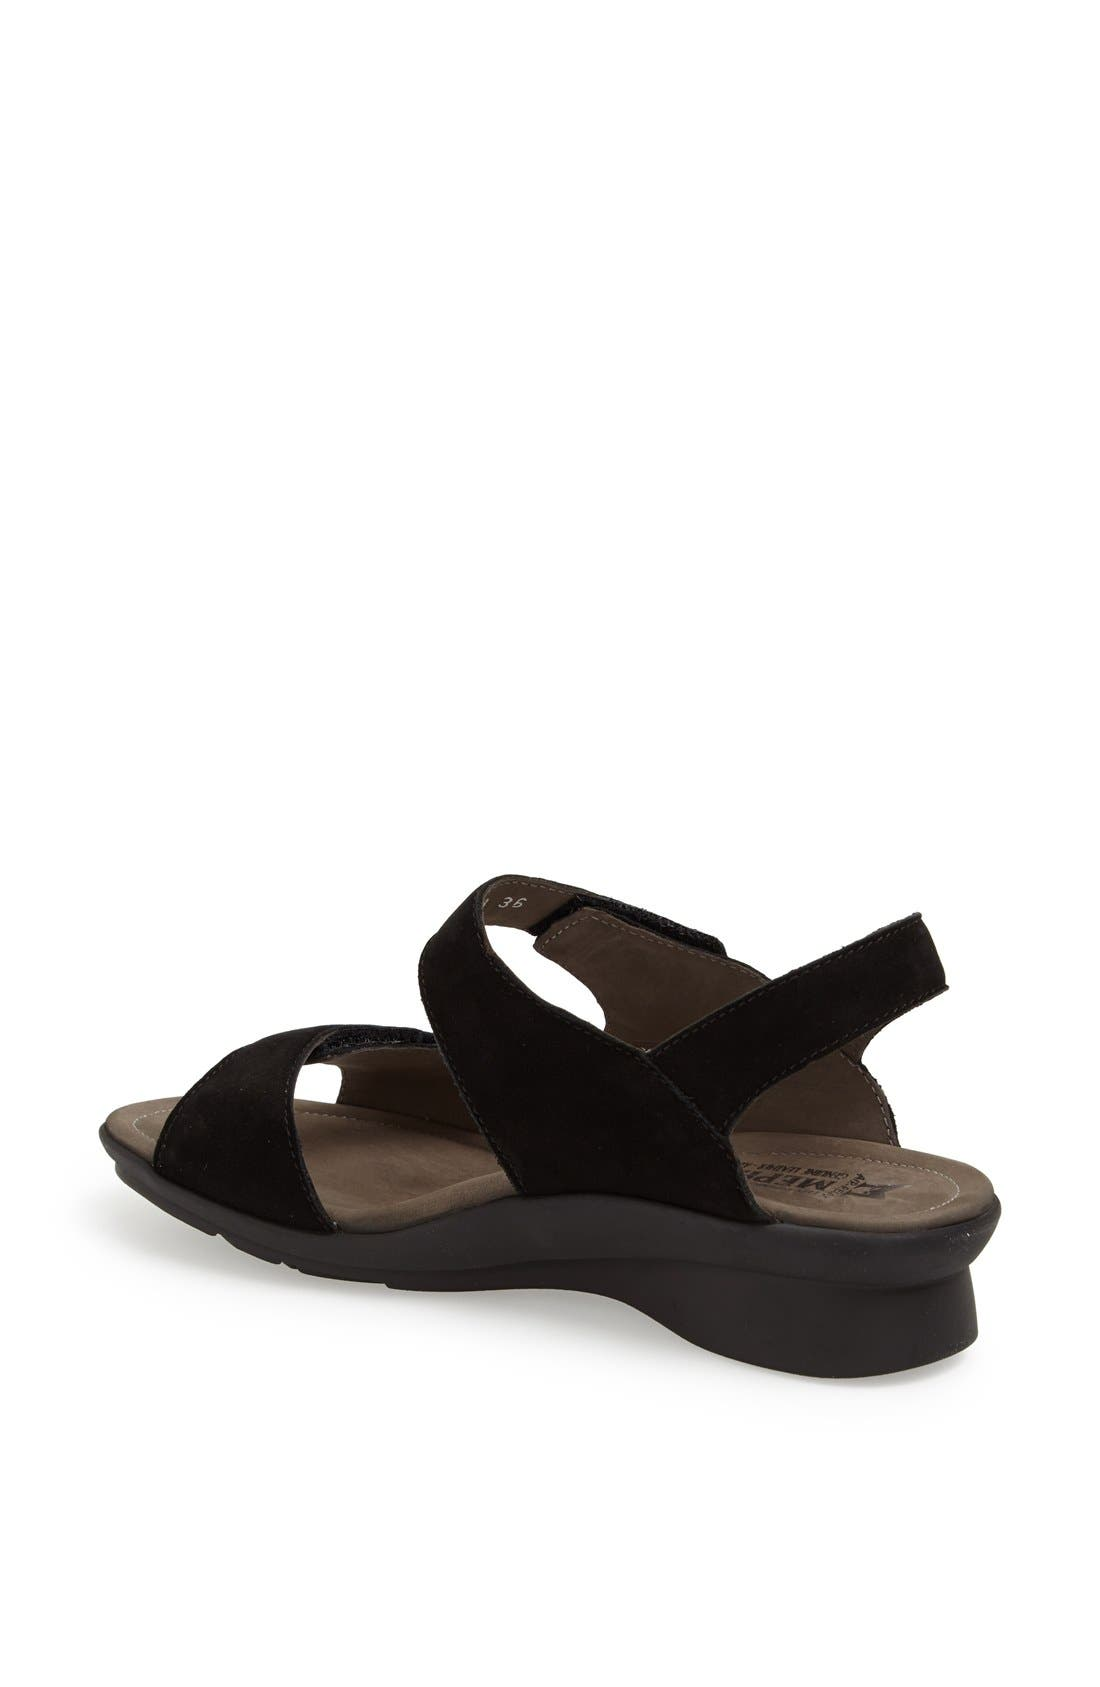 MEPHISTO, 'Prudy' Leather Sandal, Alternate thumbnail 2, color, BLACK NUBUCK LEATHER